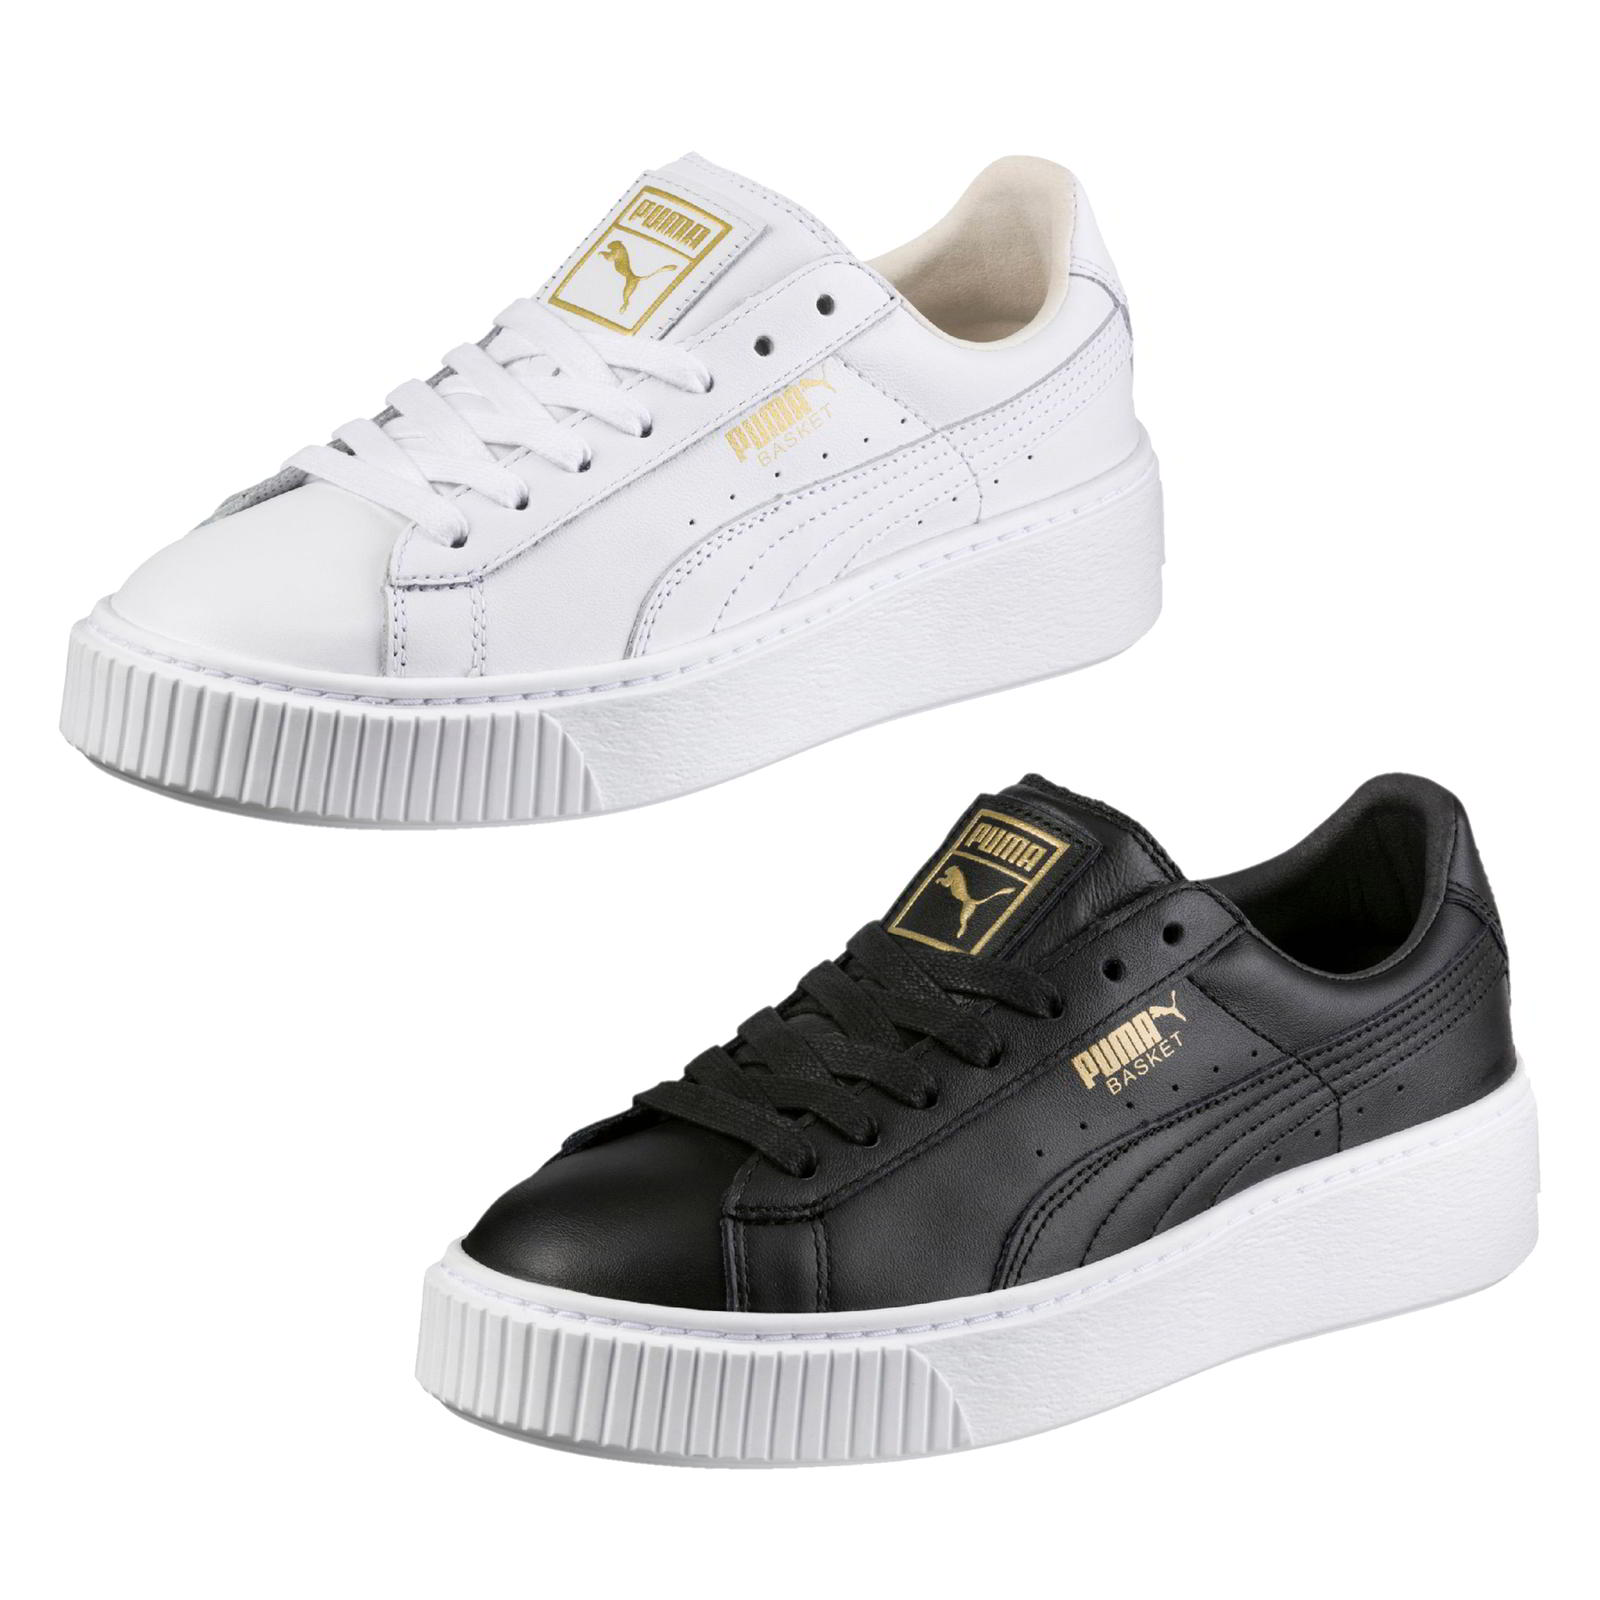 df257134d12c Details about Puma Basket Platform Womens Ladies Black White Gold Trainers  Shoes Size 4-8